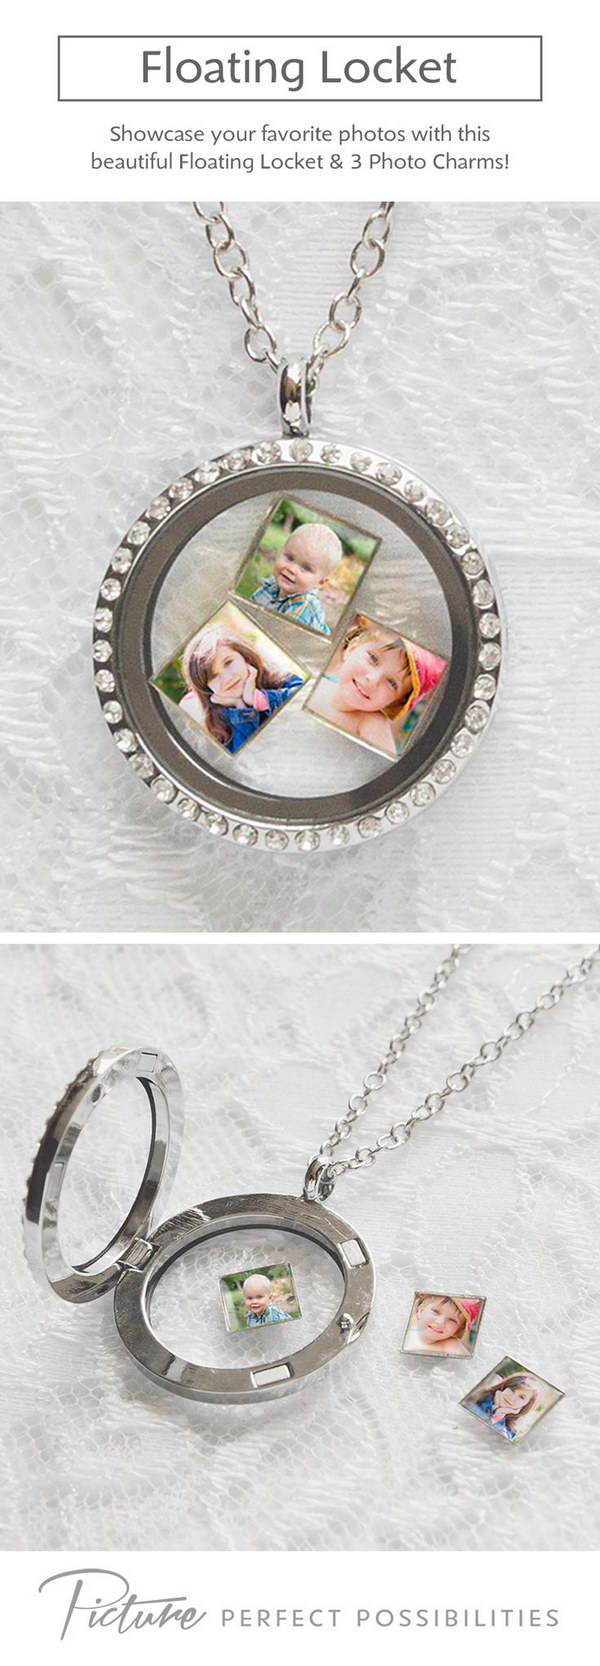 Floating Photo Necklace. This floating locket comes embellished with stones, a chain link necklace, and three floating photo charms.